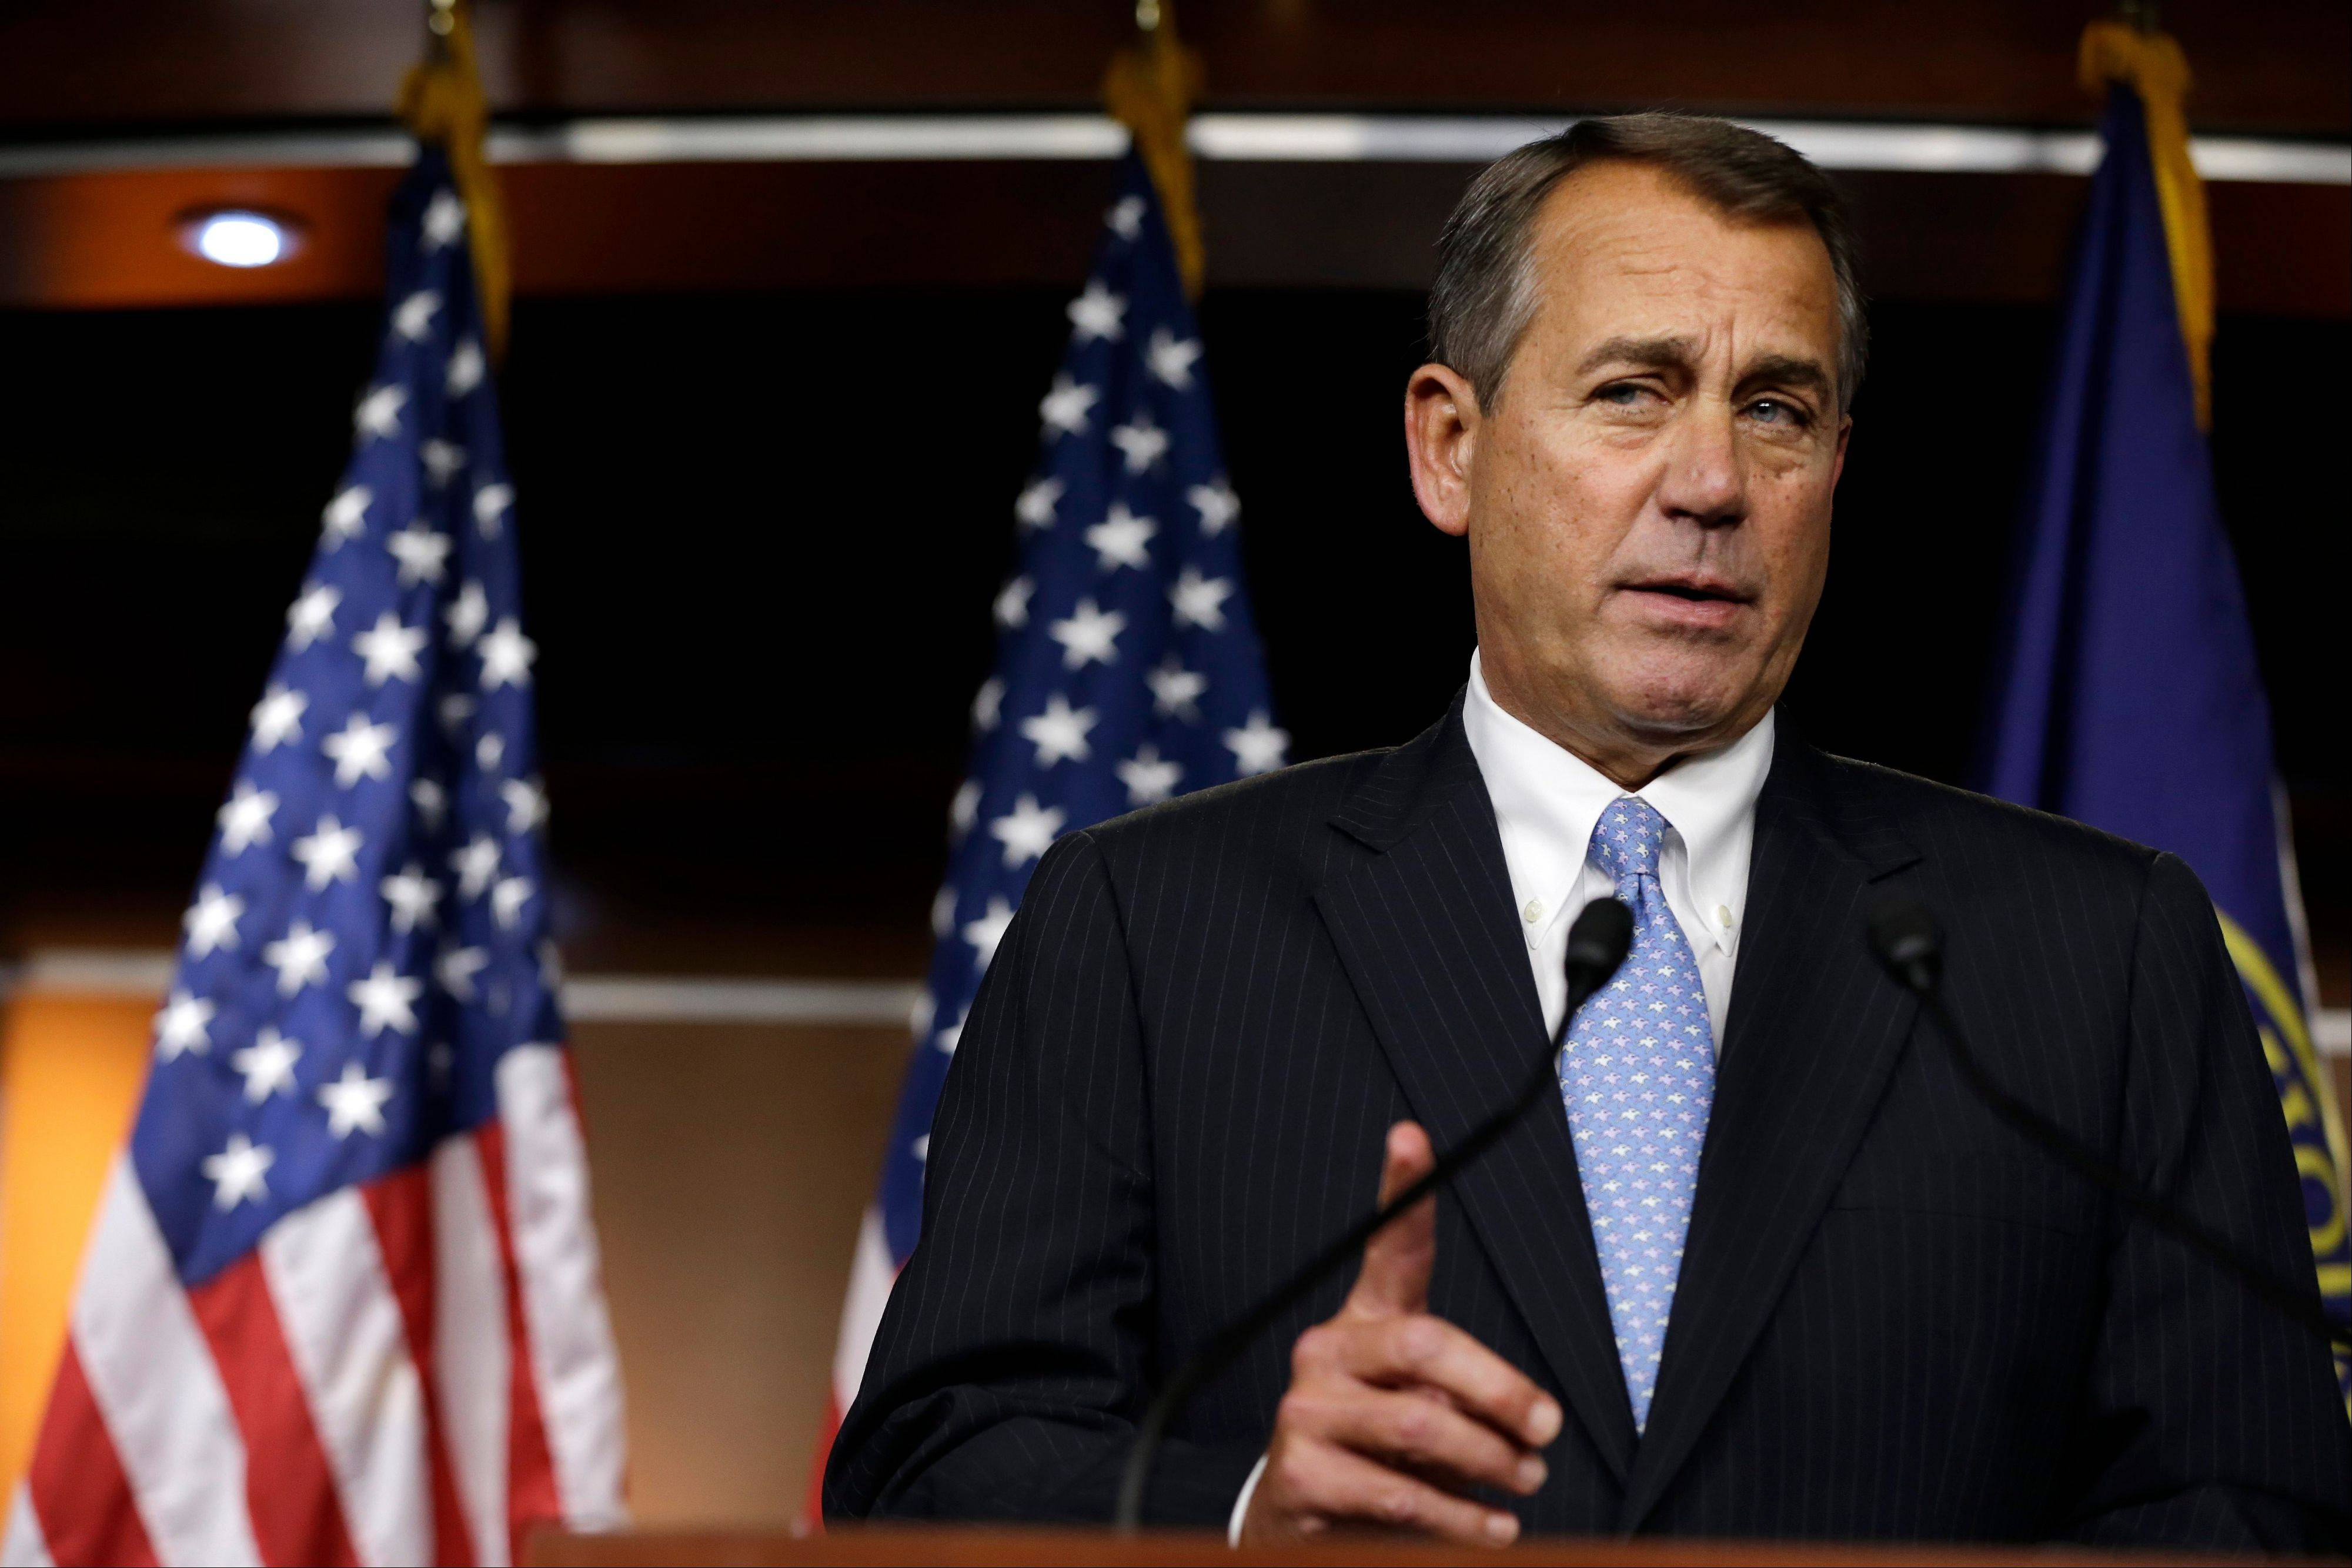 House Speaker Rep. John Boehner of Ohio, speaks to the media about the fiscal cliff at the U.S. Capitol in Washington.